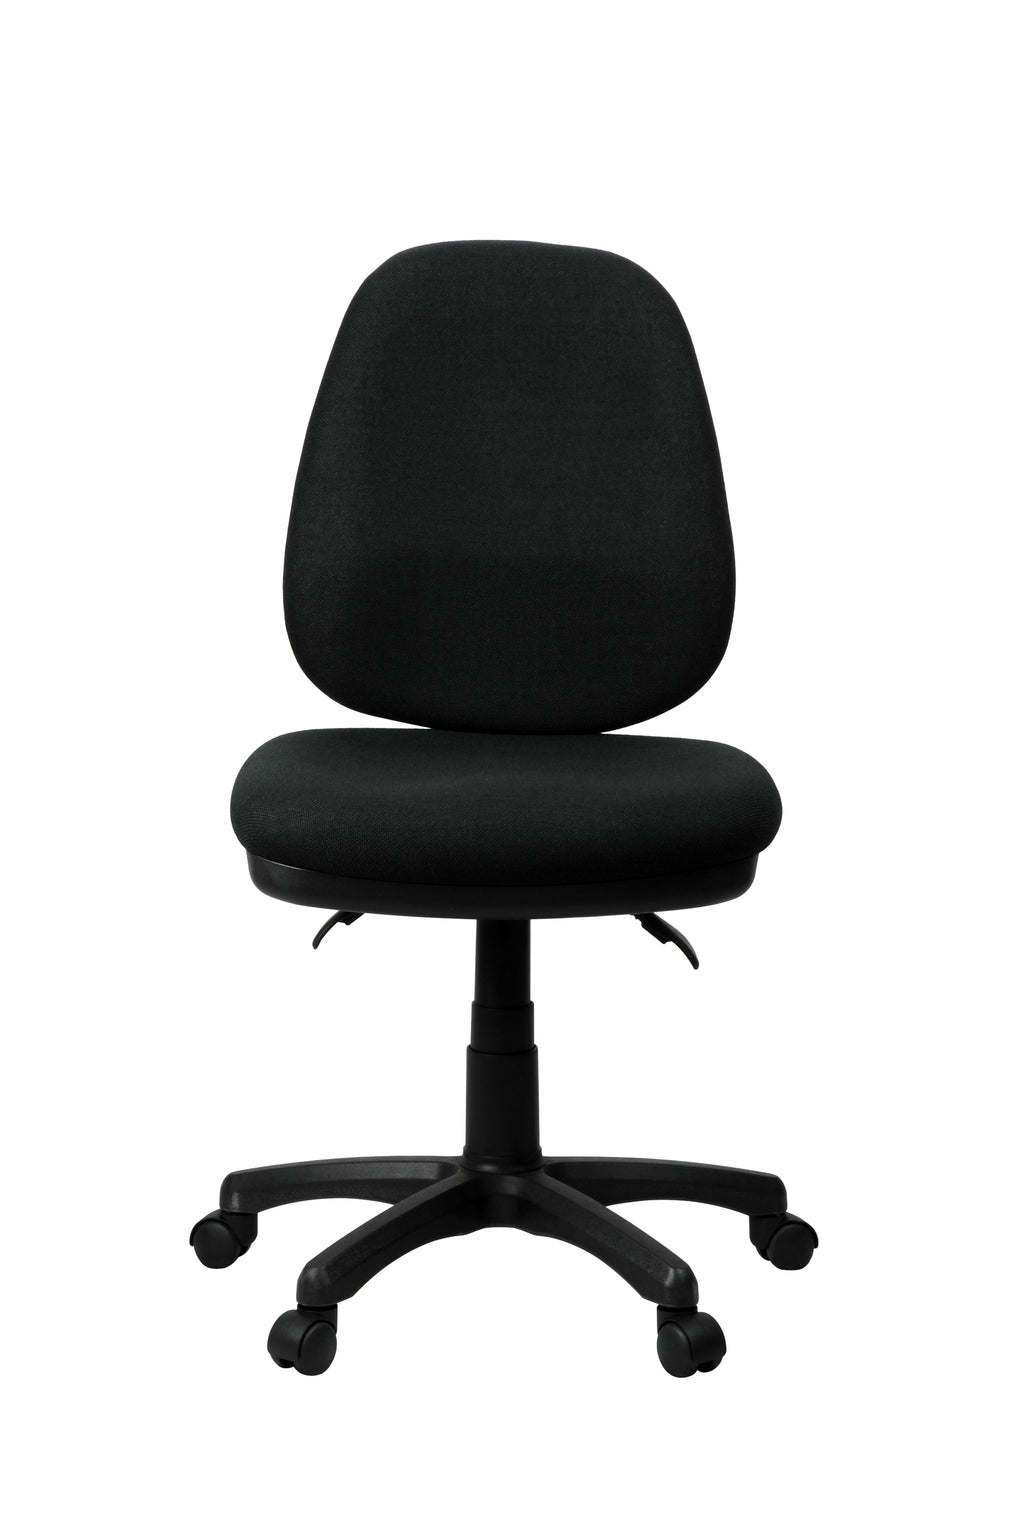 Ergonomic Classic Home or Office Task Chair - High Back - KiPP